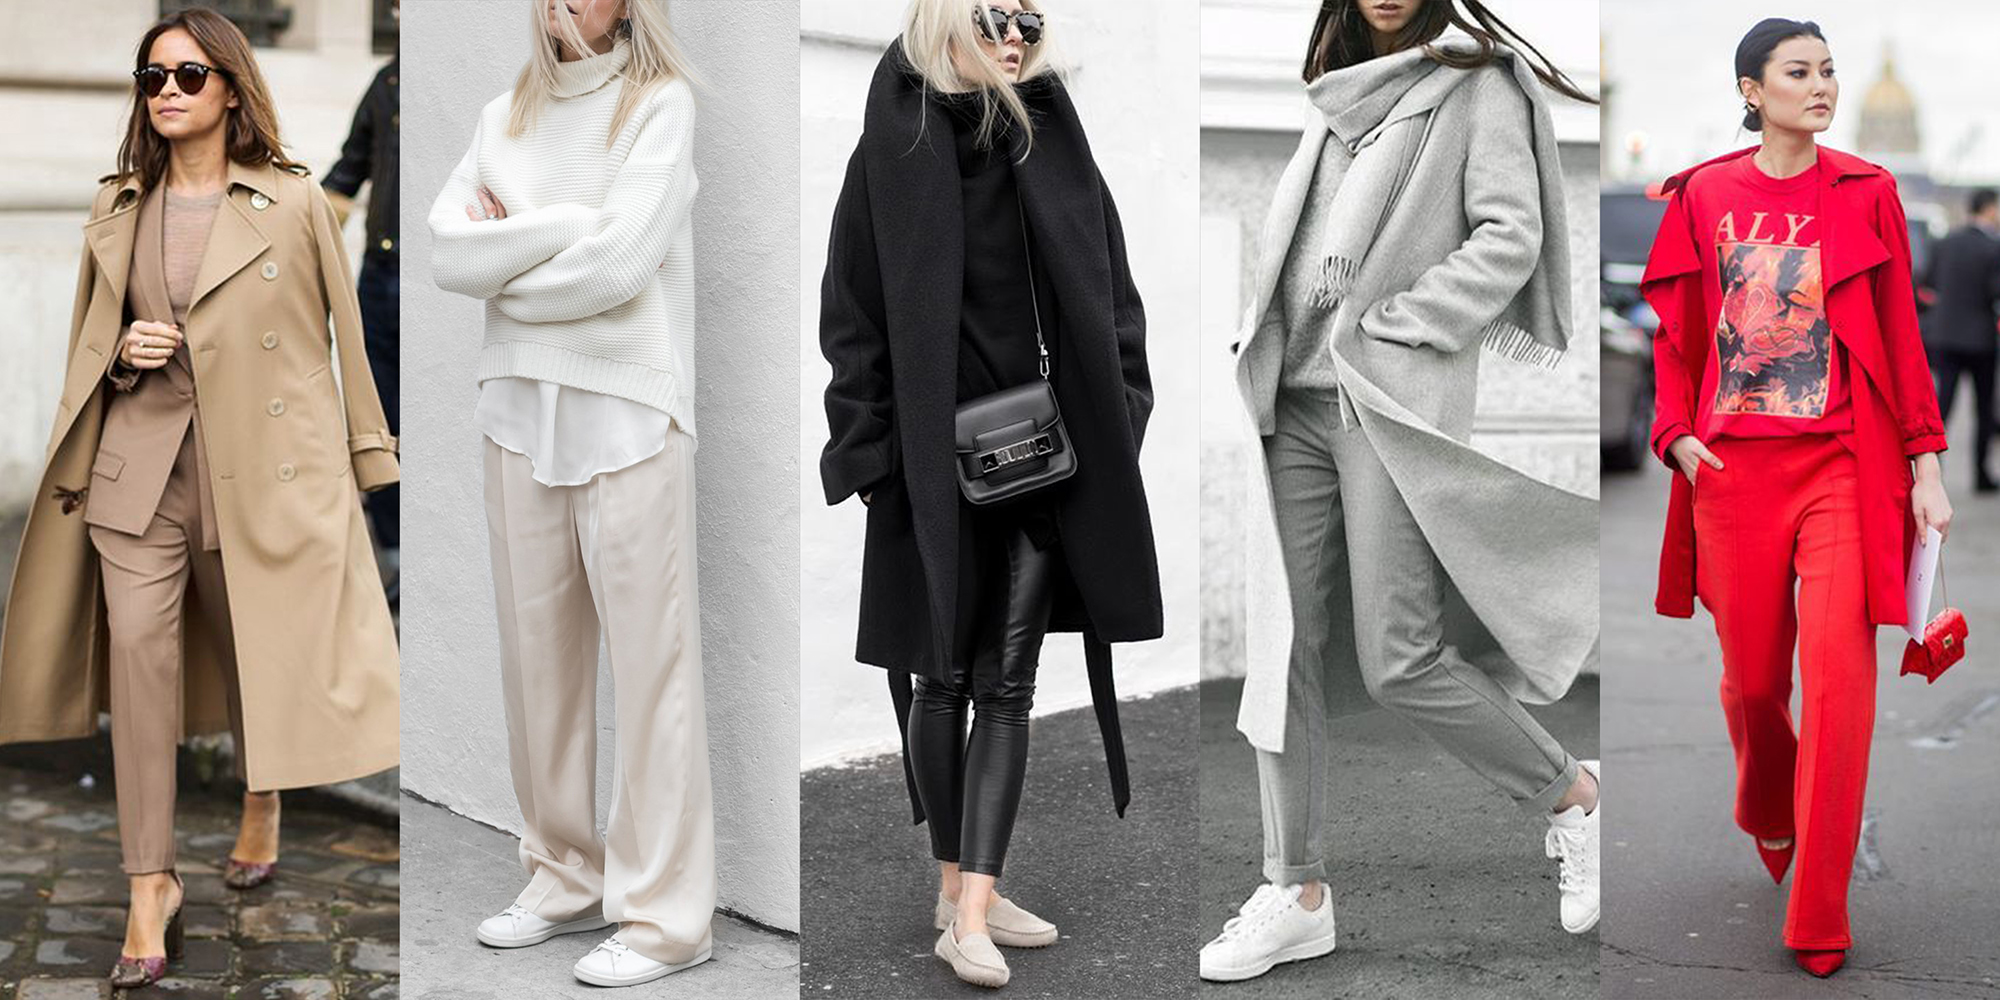 10-ways-to-wear-monochromatic-outfits-3.jpg